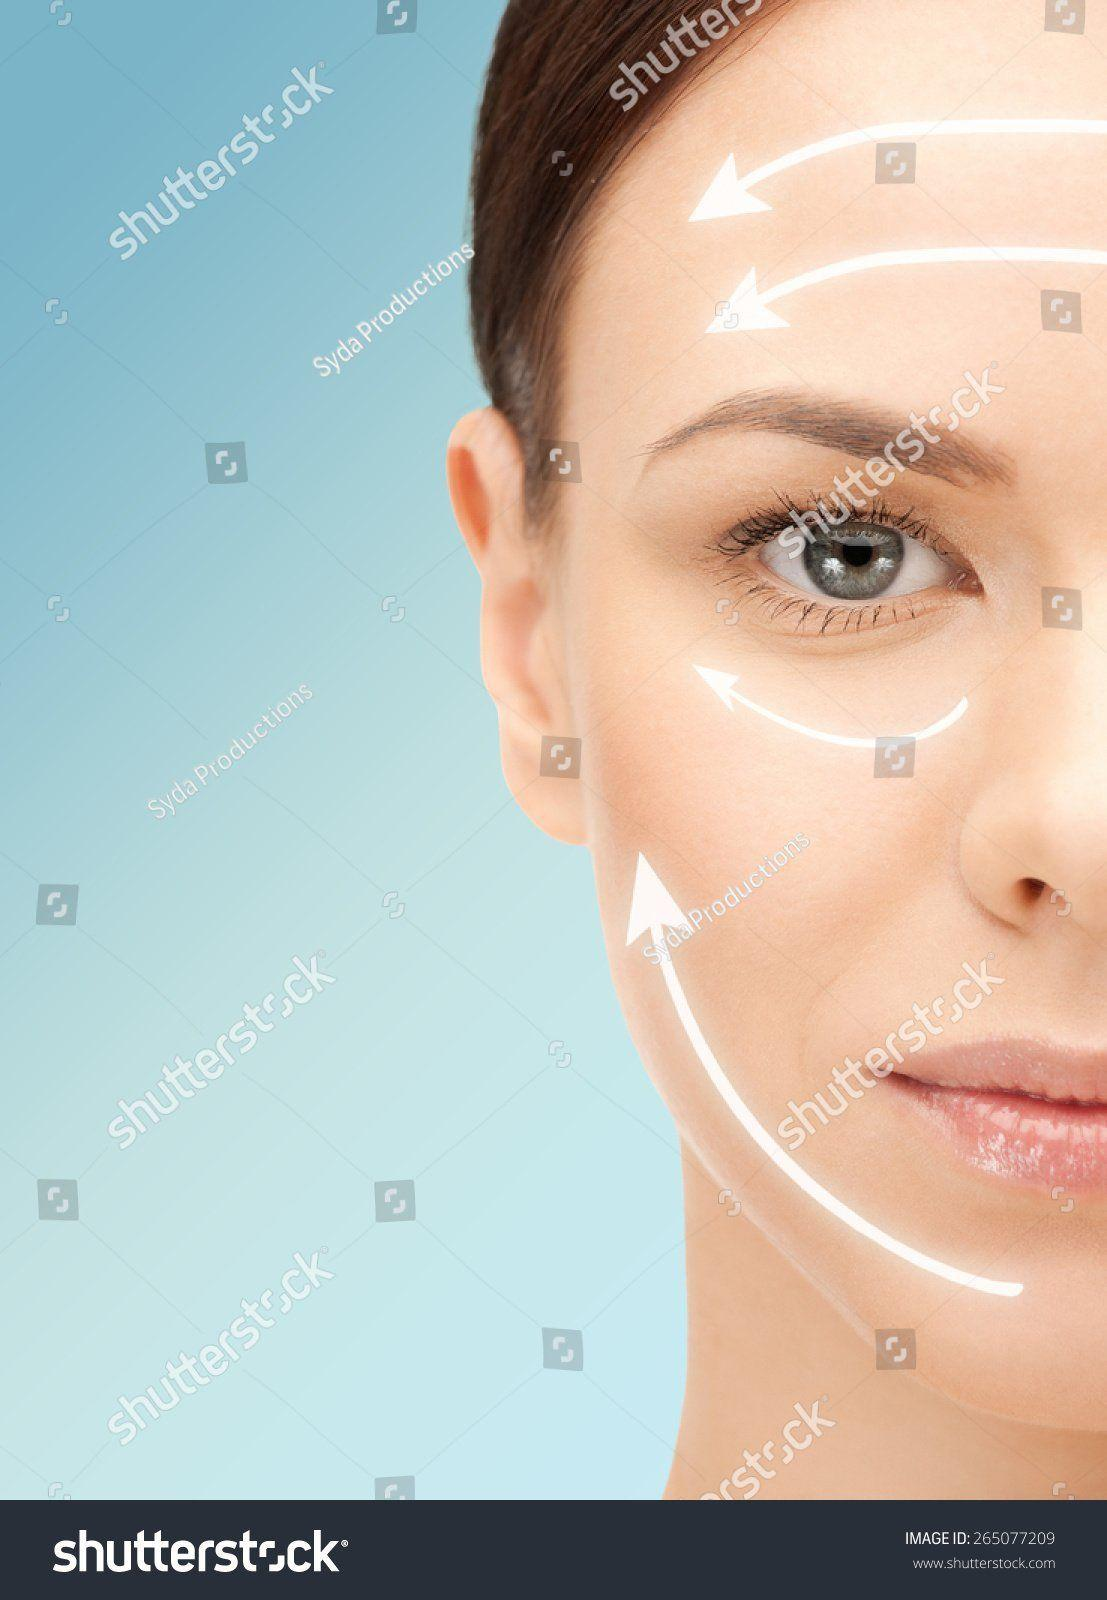 Facial hydrogel mask for plastic surgeons